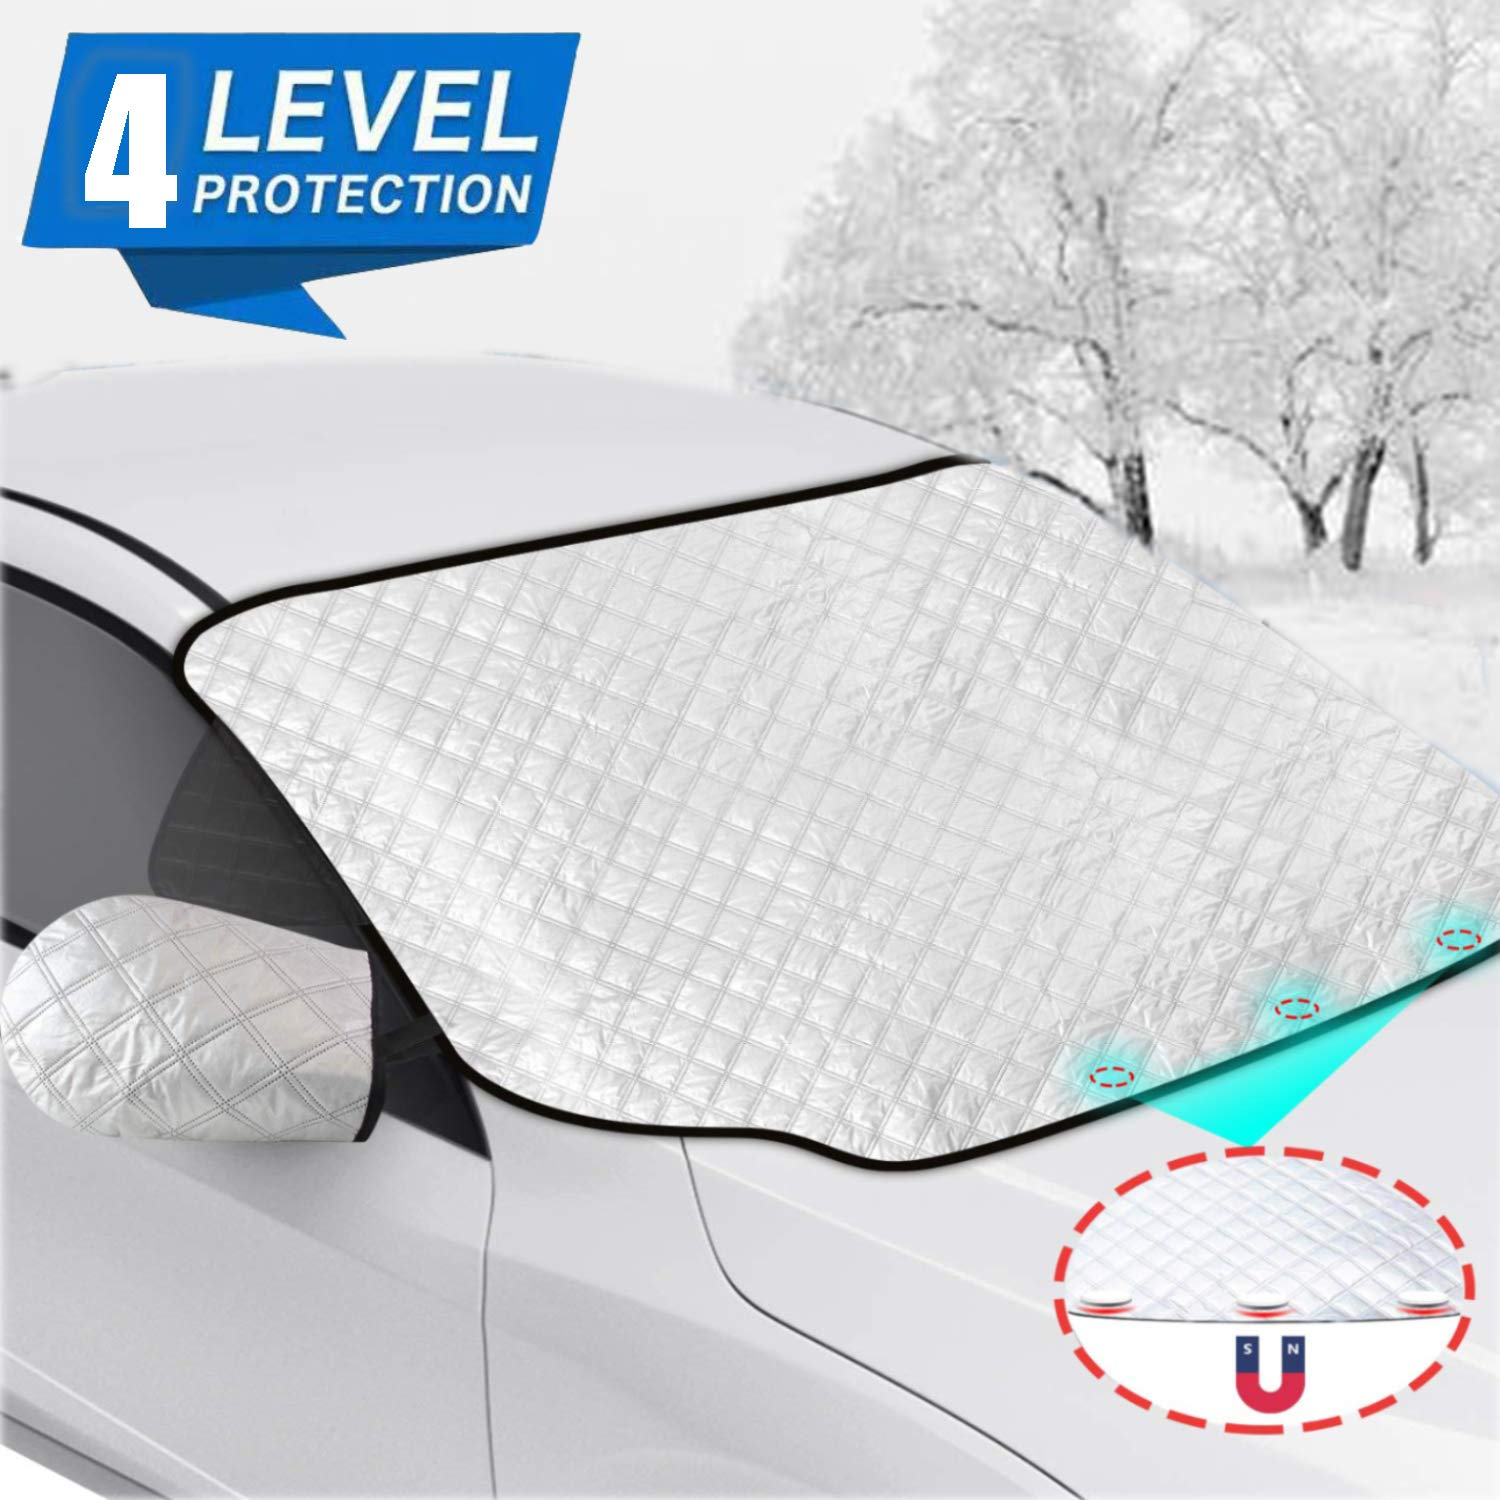 PAUTO-P Car Windshield Snow Cover,Car Windshield Snow Ice Cover with 4 Layers Protection,Snow,Ice,UV,Frost Defense,Extra Large Windshield Winter Cover Fits Most Cars and SUV